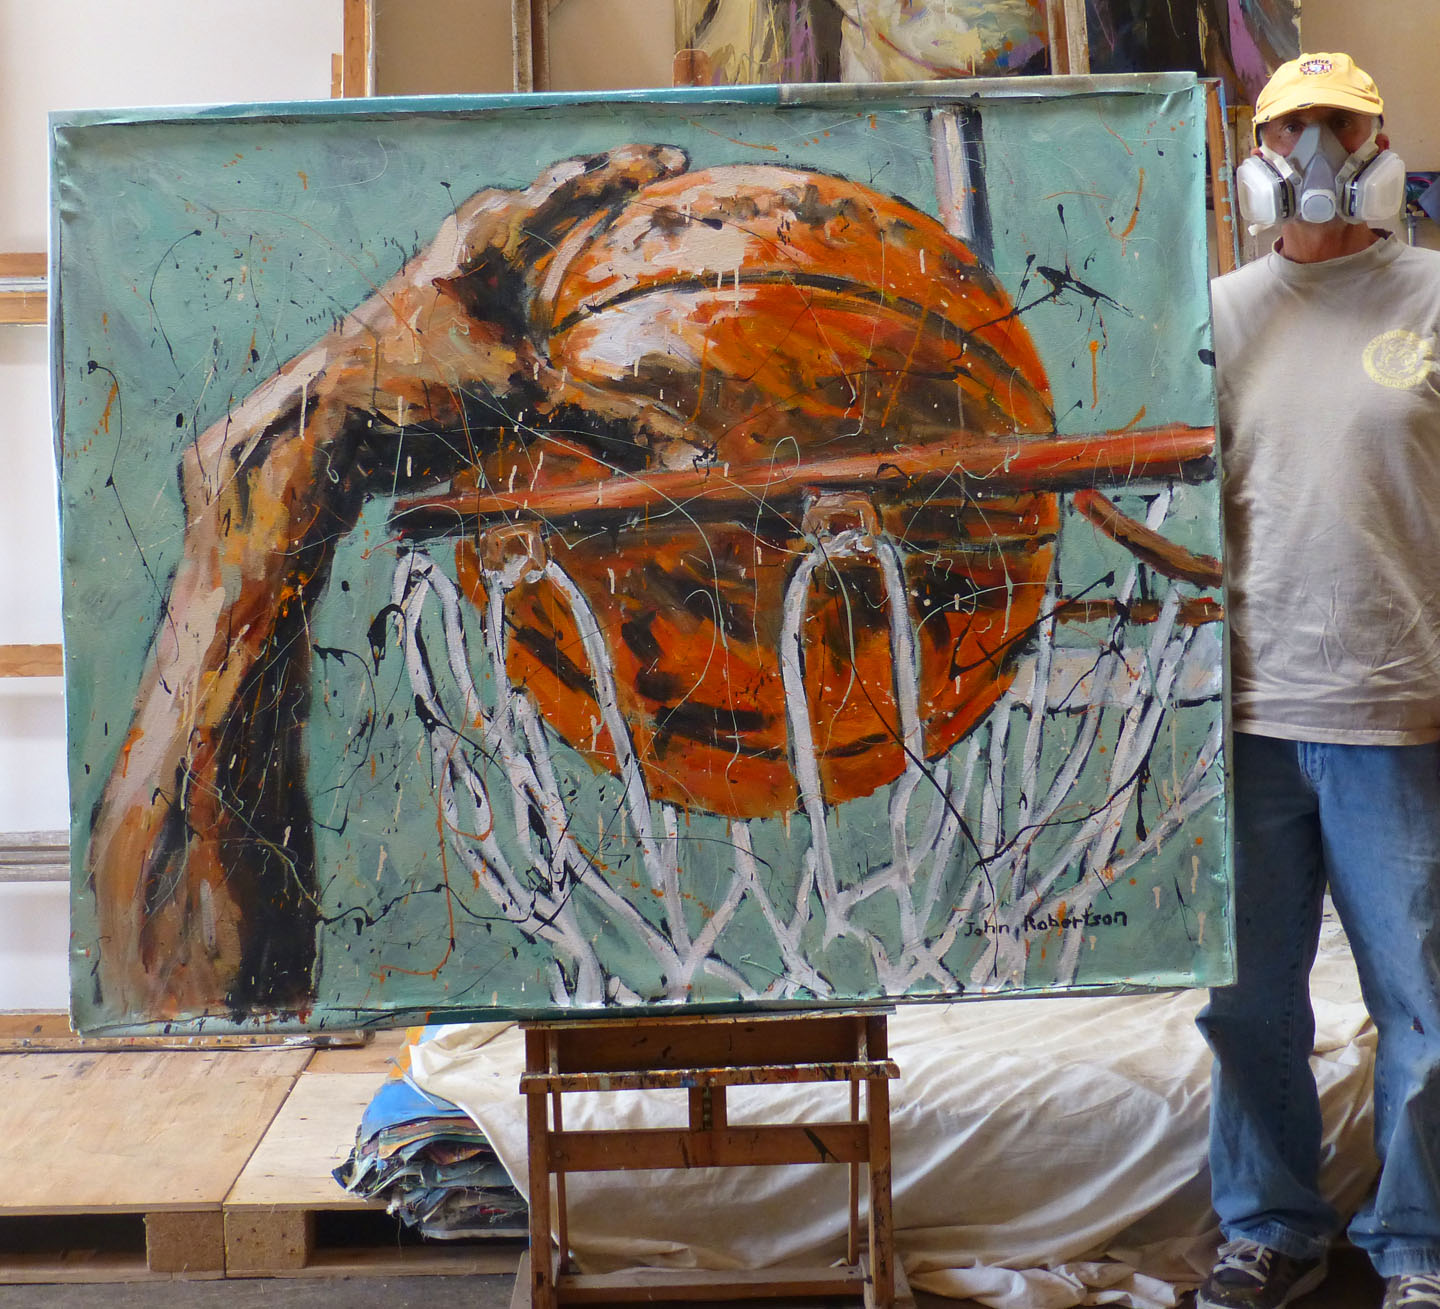 New Jersey Home Painting From J S Painting: Basketball Painting Dunk Shot Image